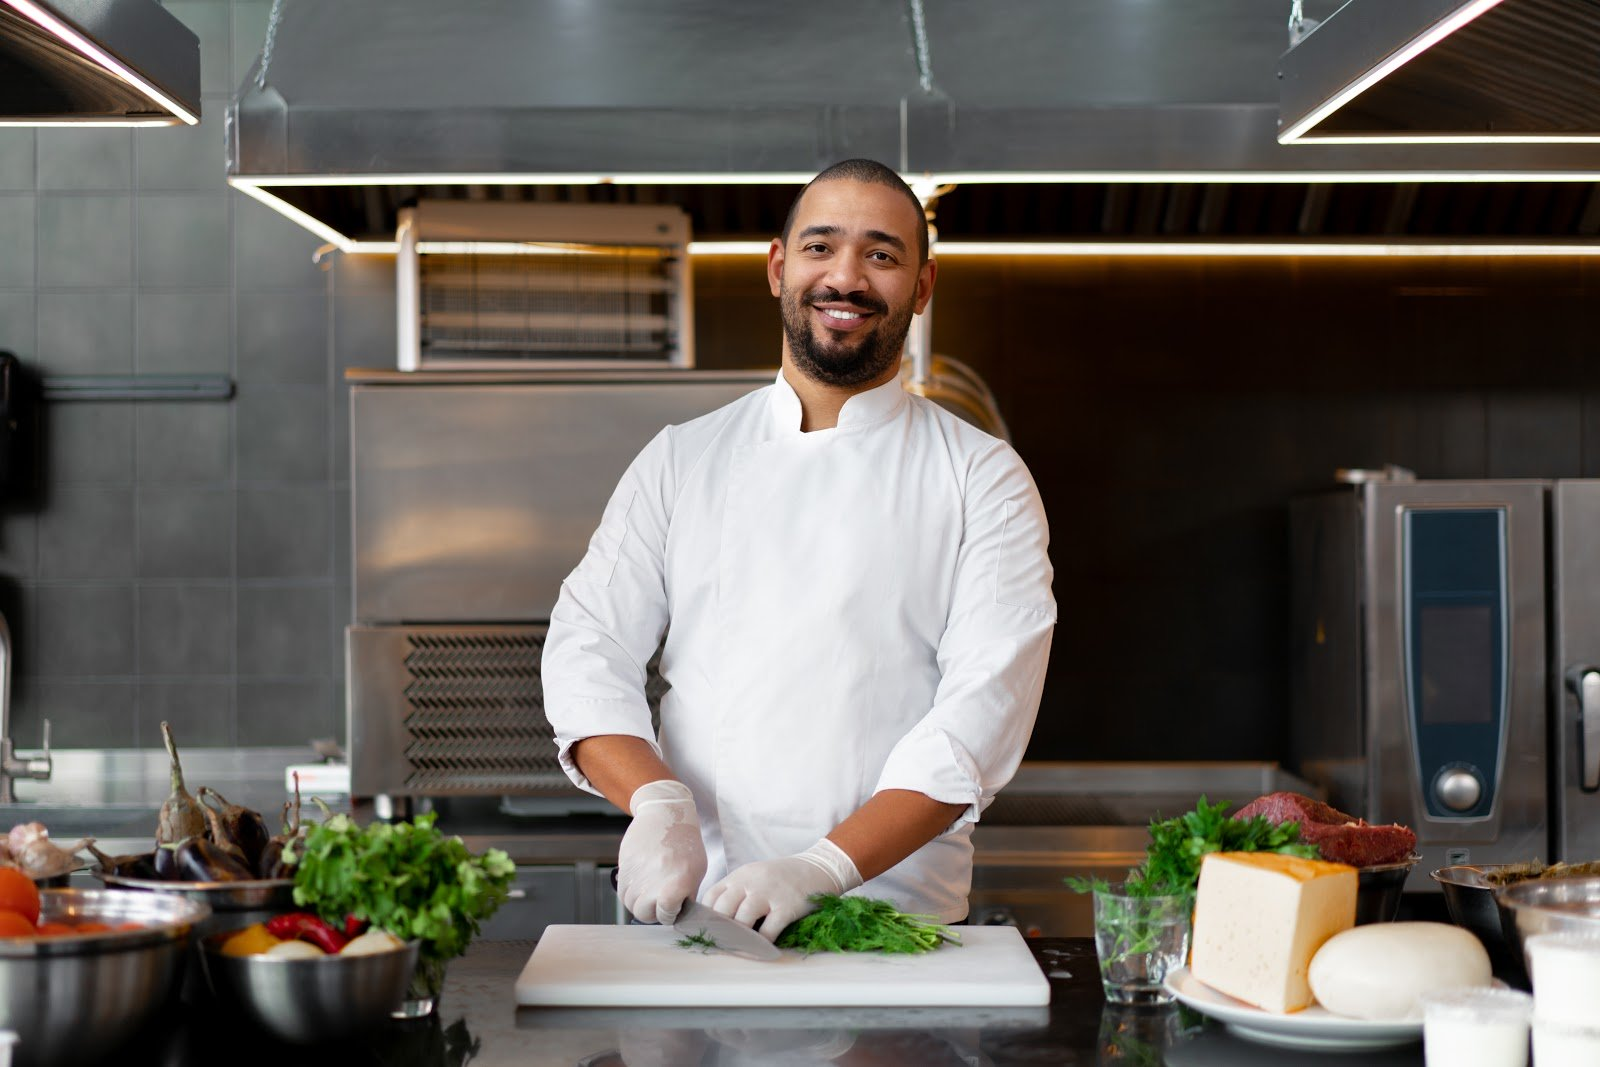 Internal promotion: Chef smiles at camera while chopping lettuce